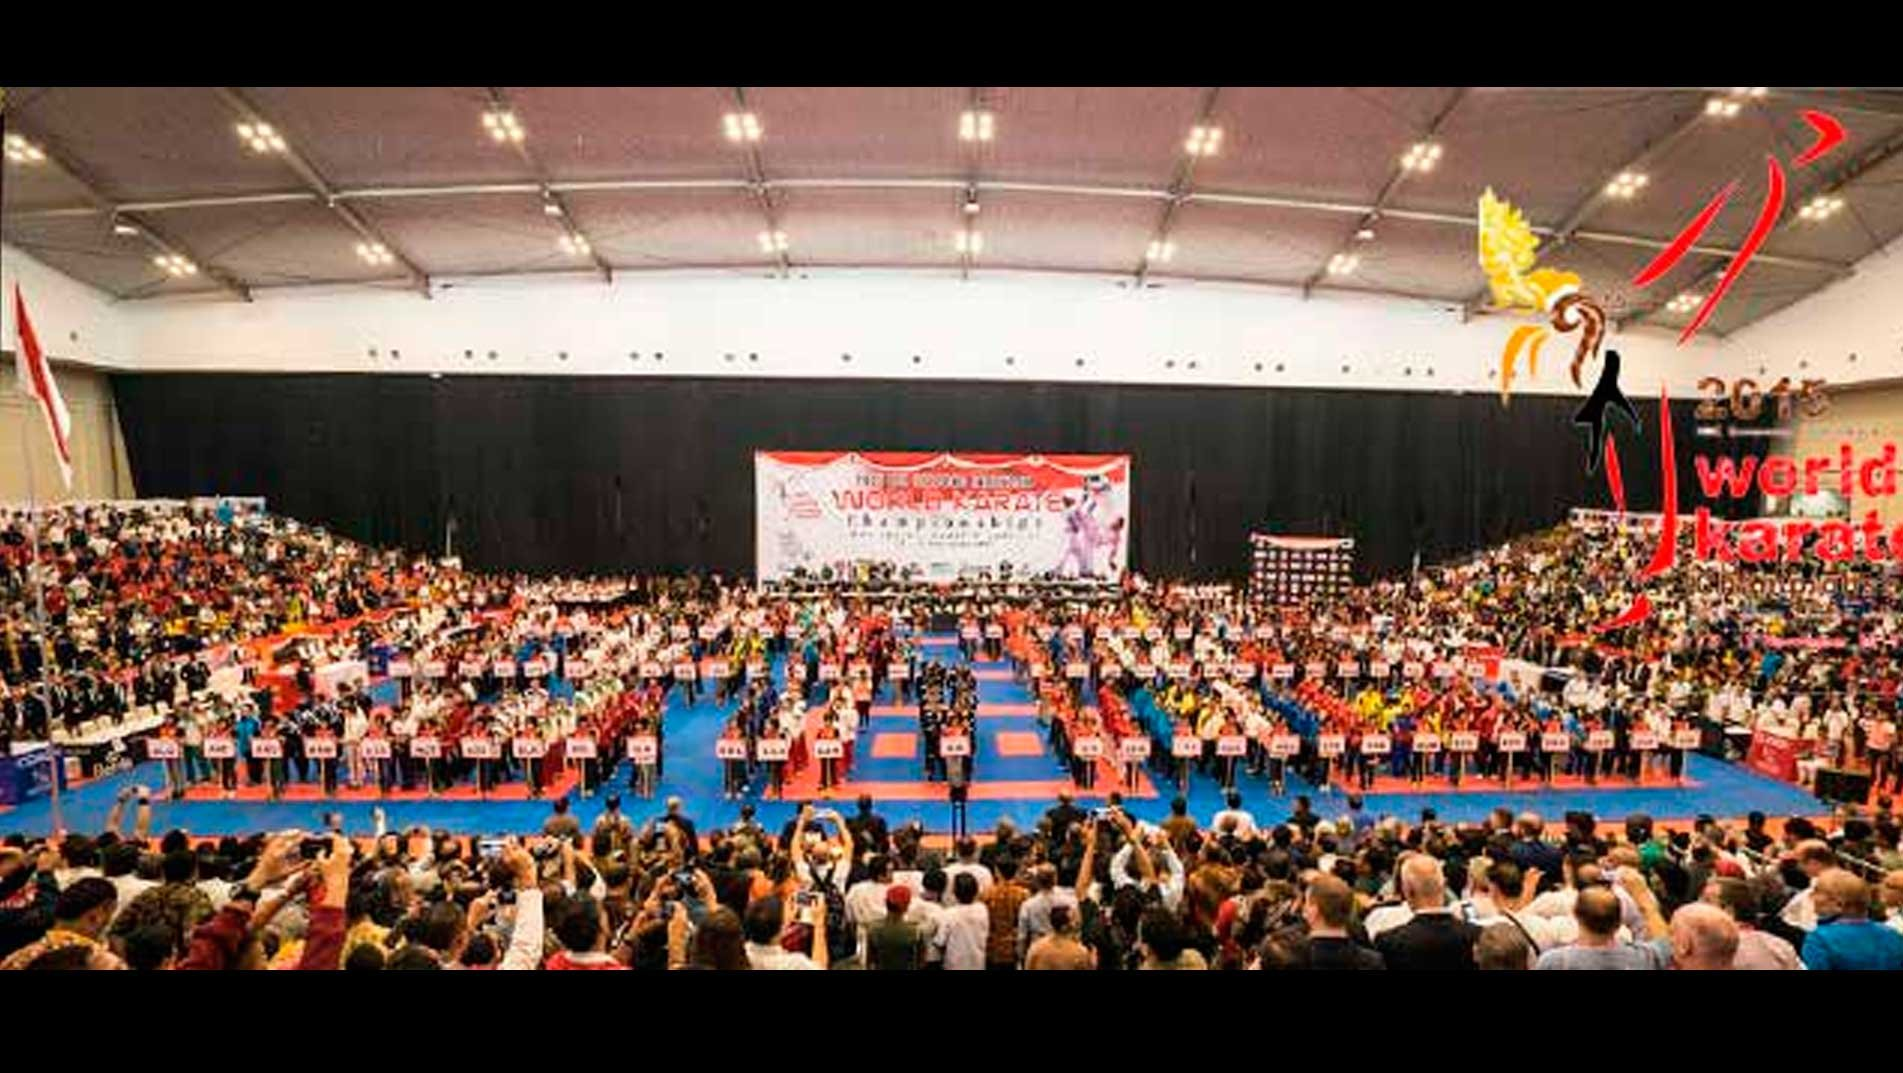 The 9th World Junior, Cadet & Under 21 Karate Championships 2015 is open.